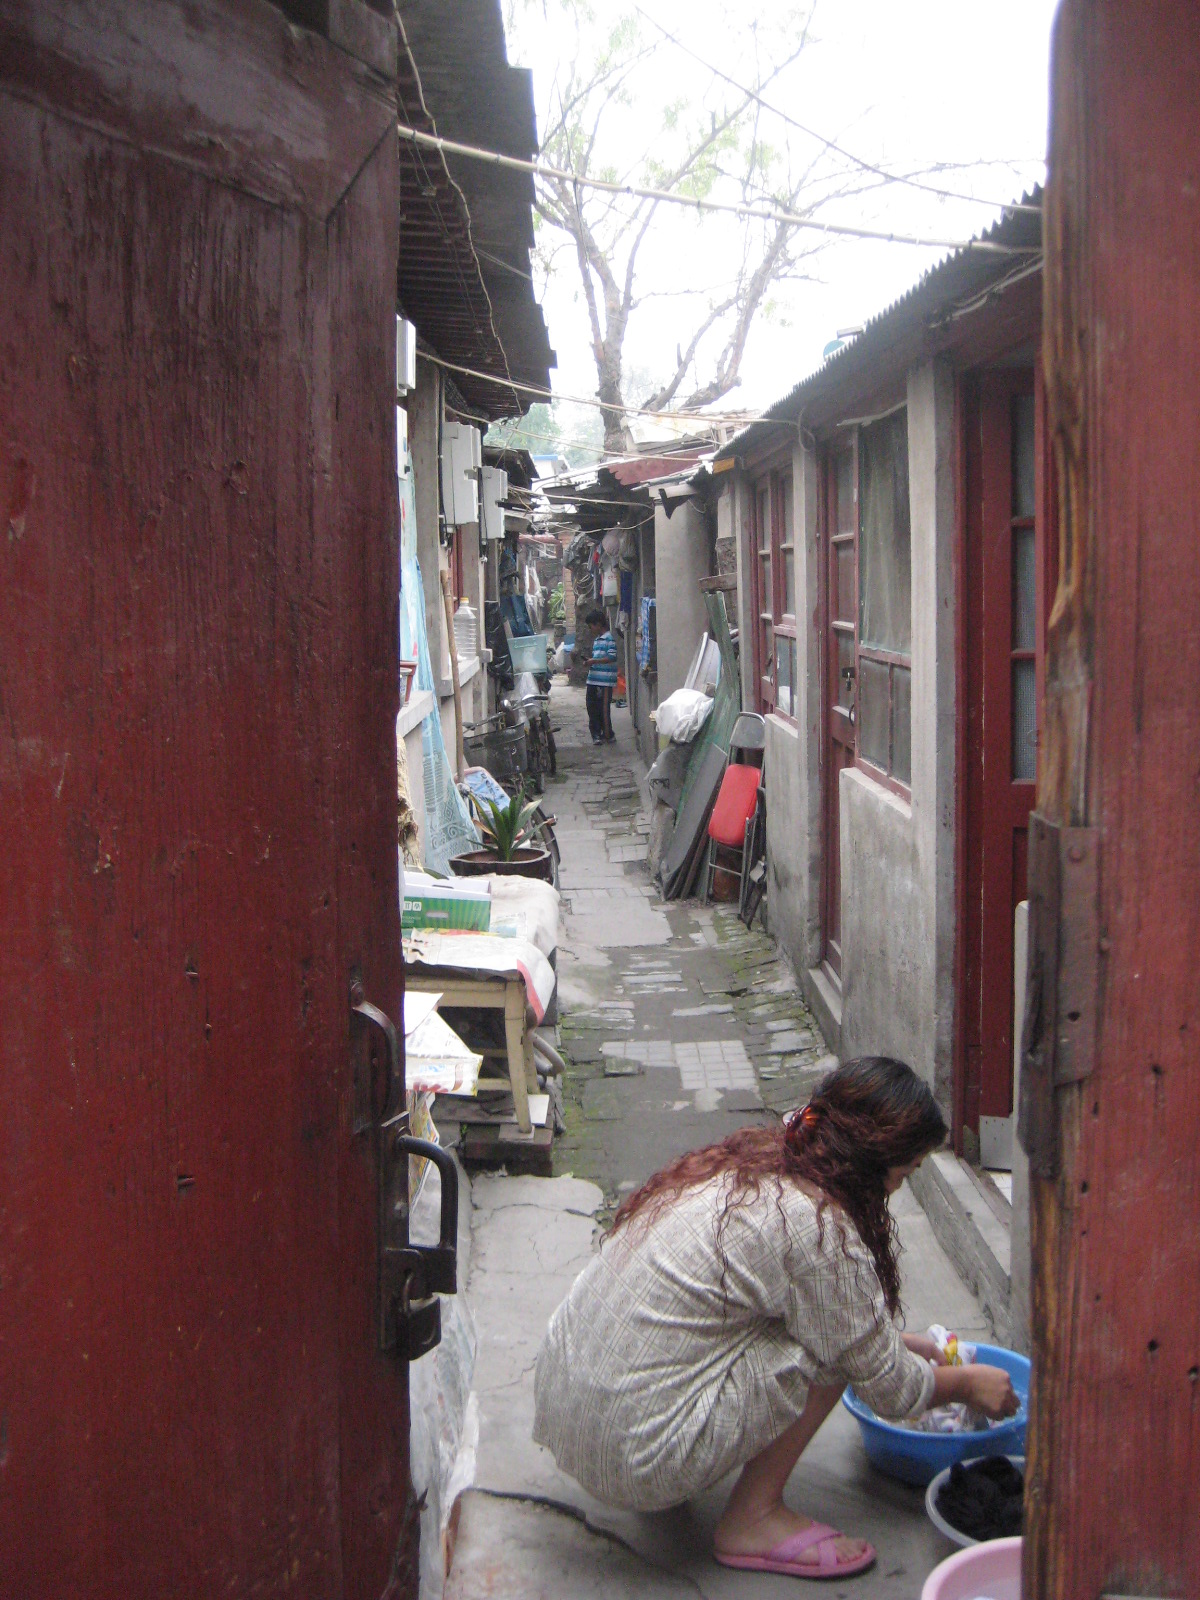 An_Unguarded_Moment_in_a_Traditional_Hutong_Alley.JPG